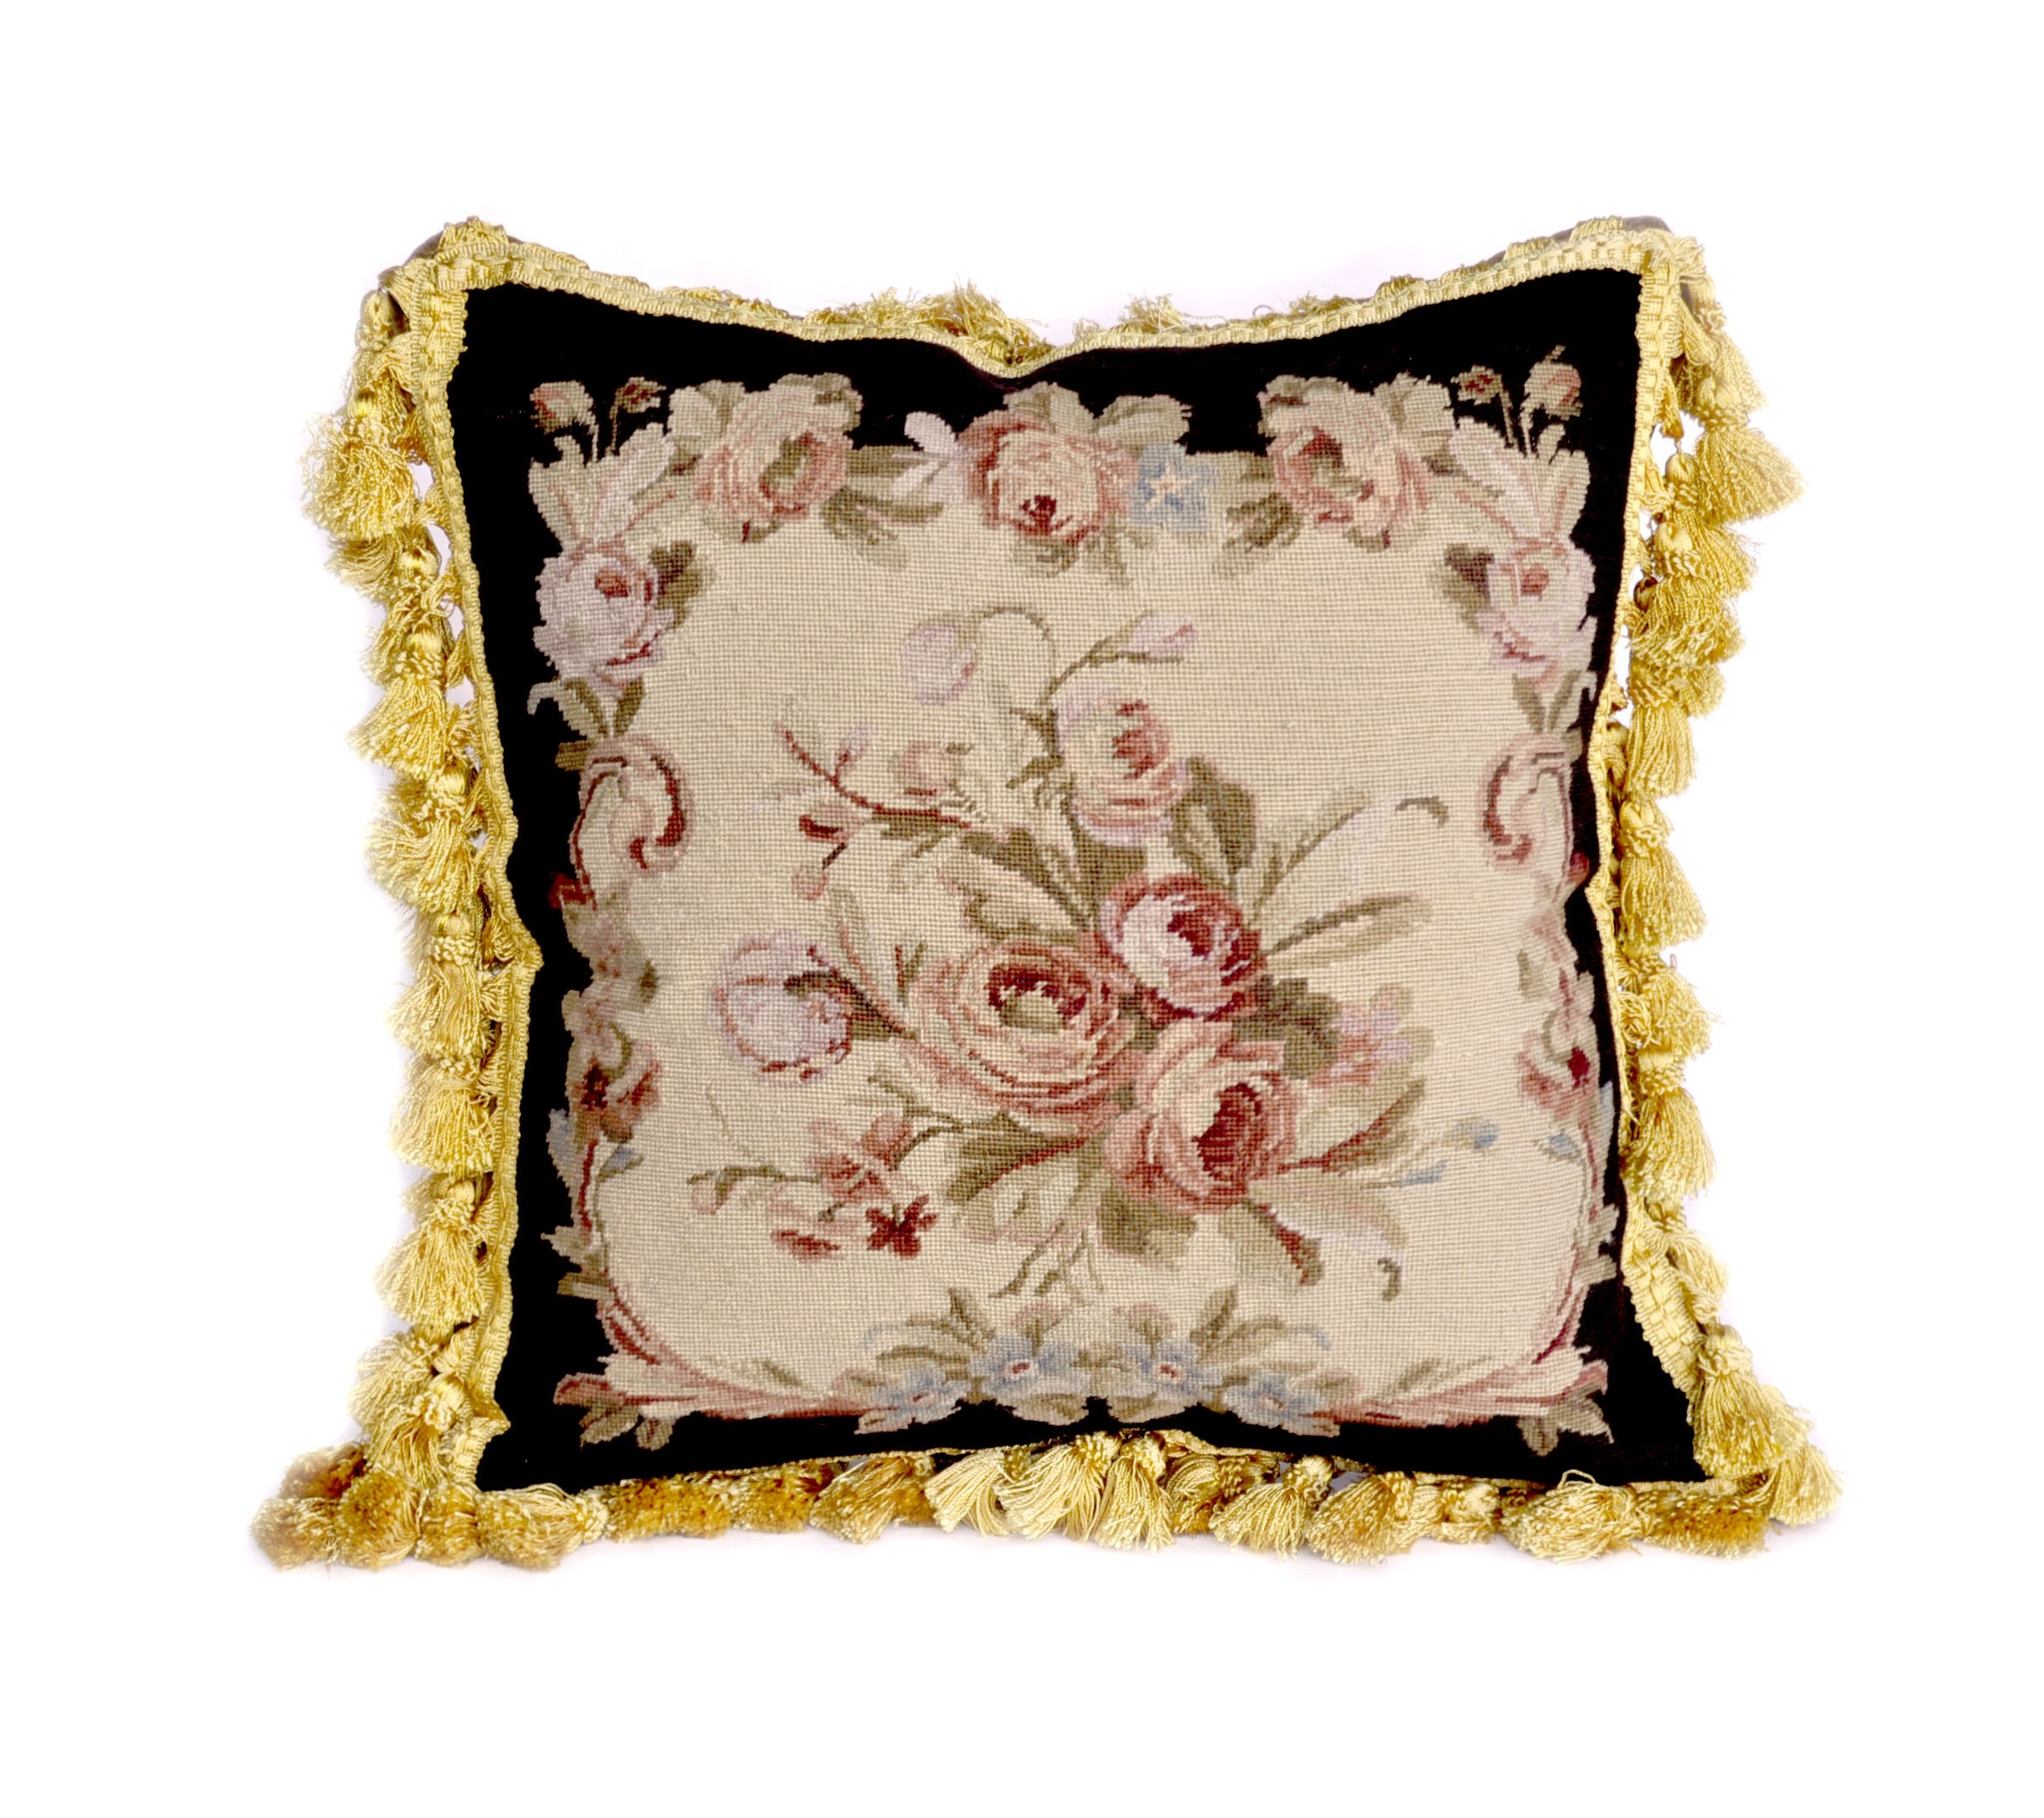 18″x18″ Wool Needlepoint Rose Bouquet Black Cushion Cover Pillow Case 12980999